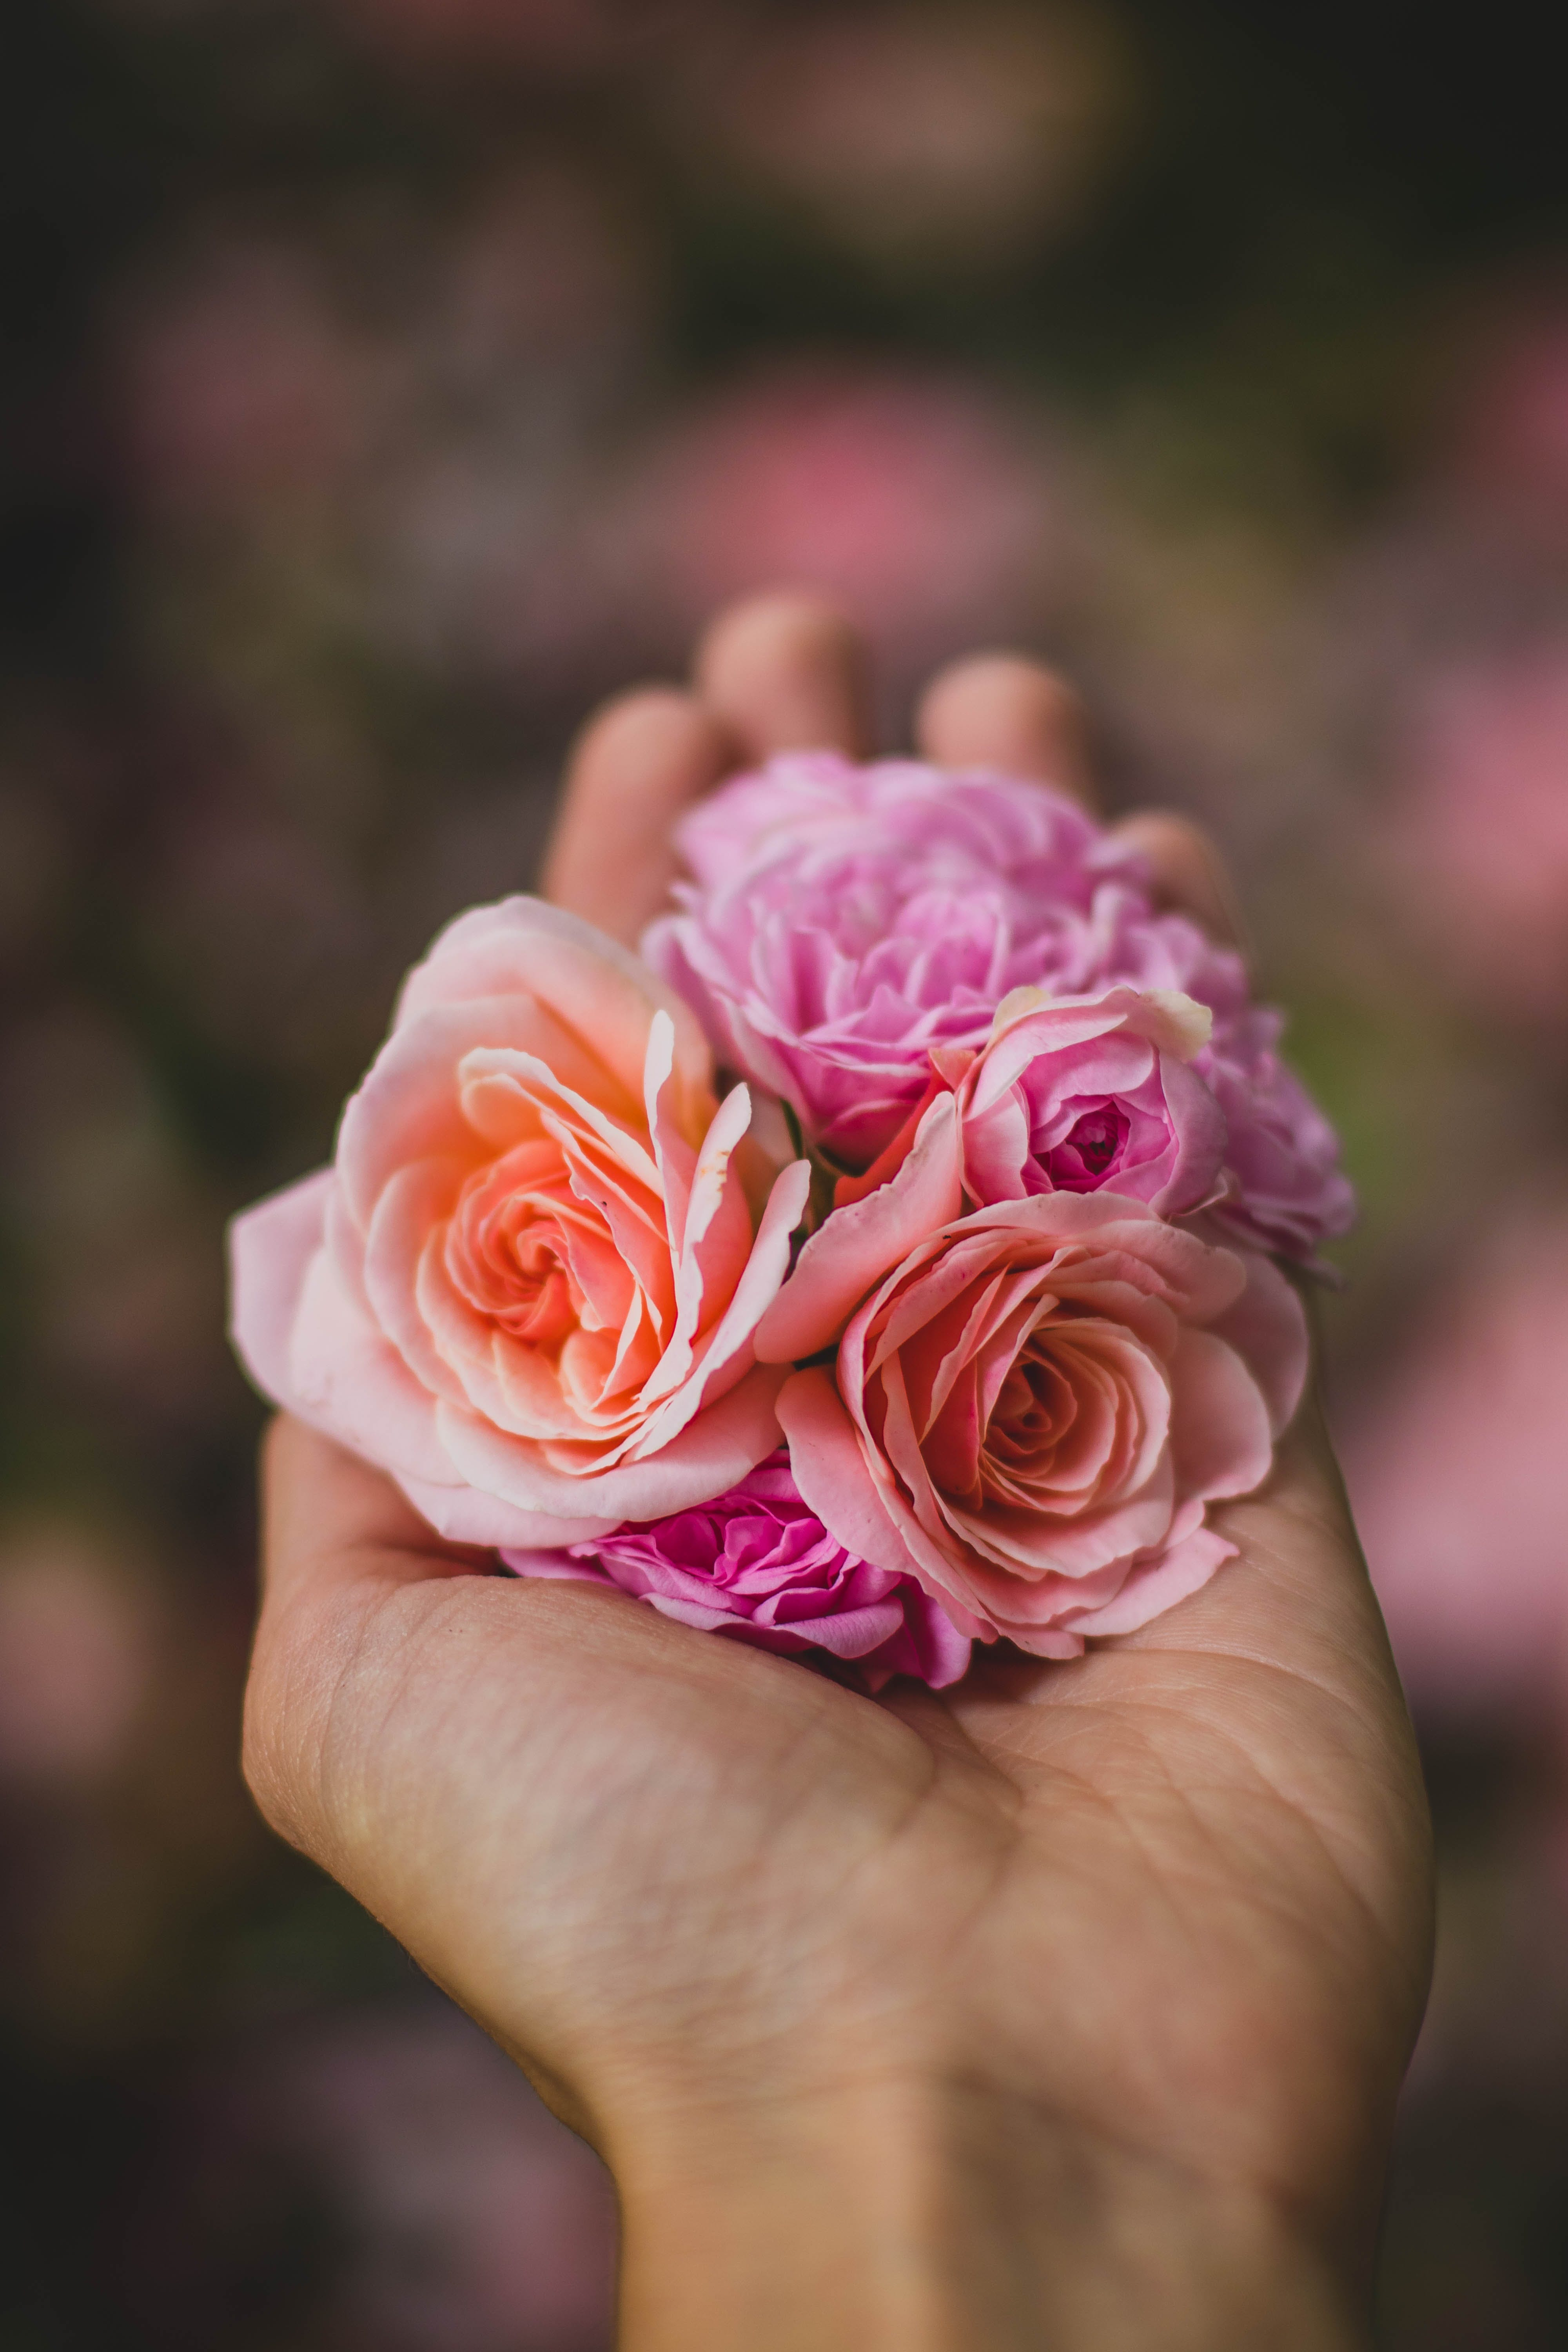 Free stock photo of love, hand, flowers, petals